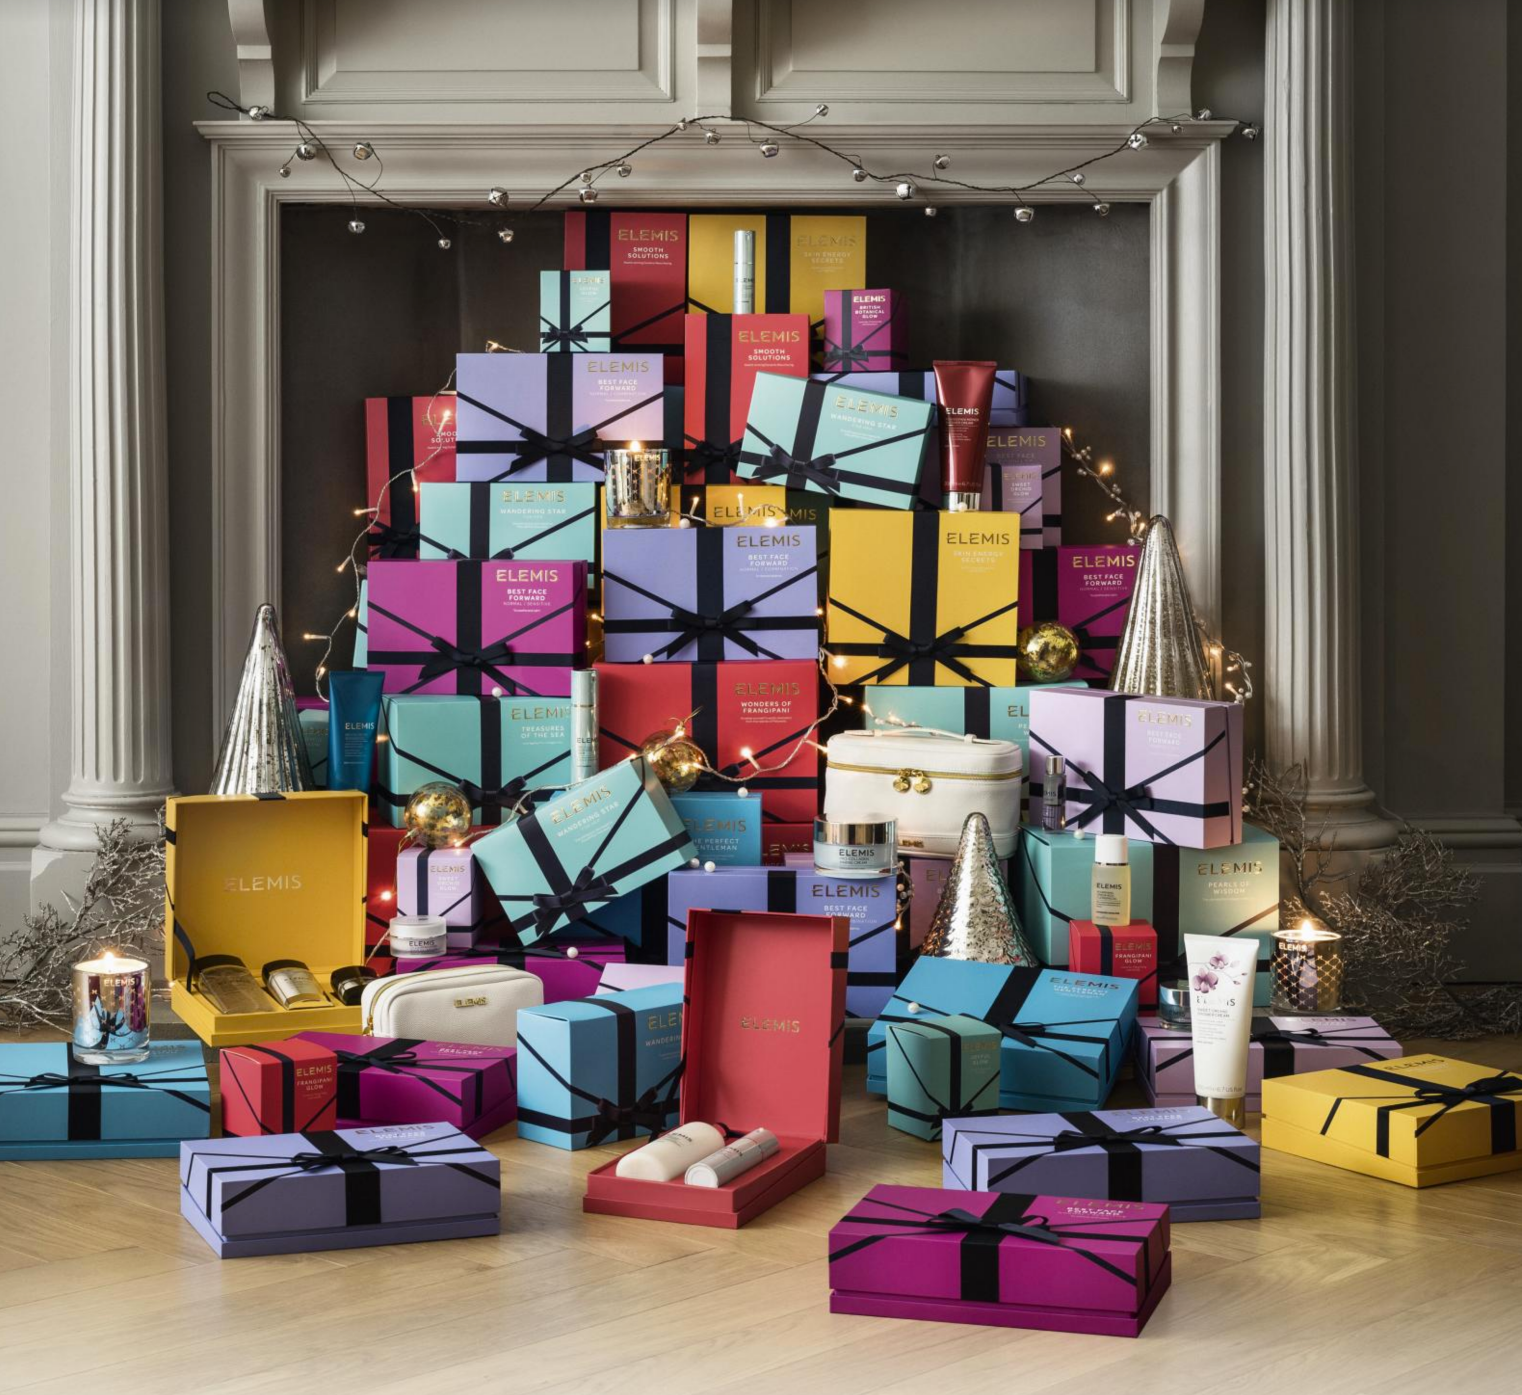 Elemis gifts packaging designed by Hunter Luxury